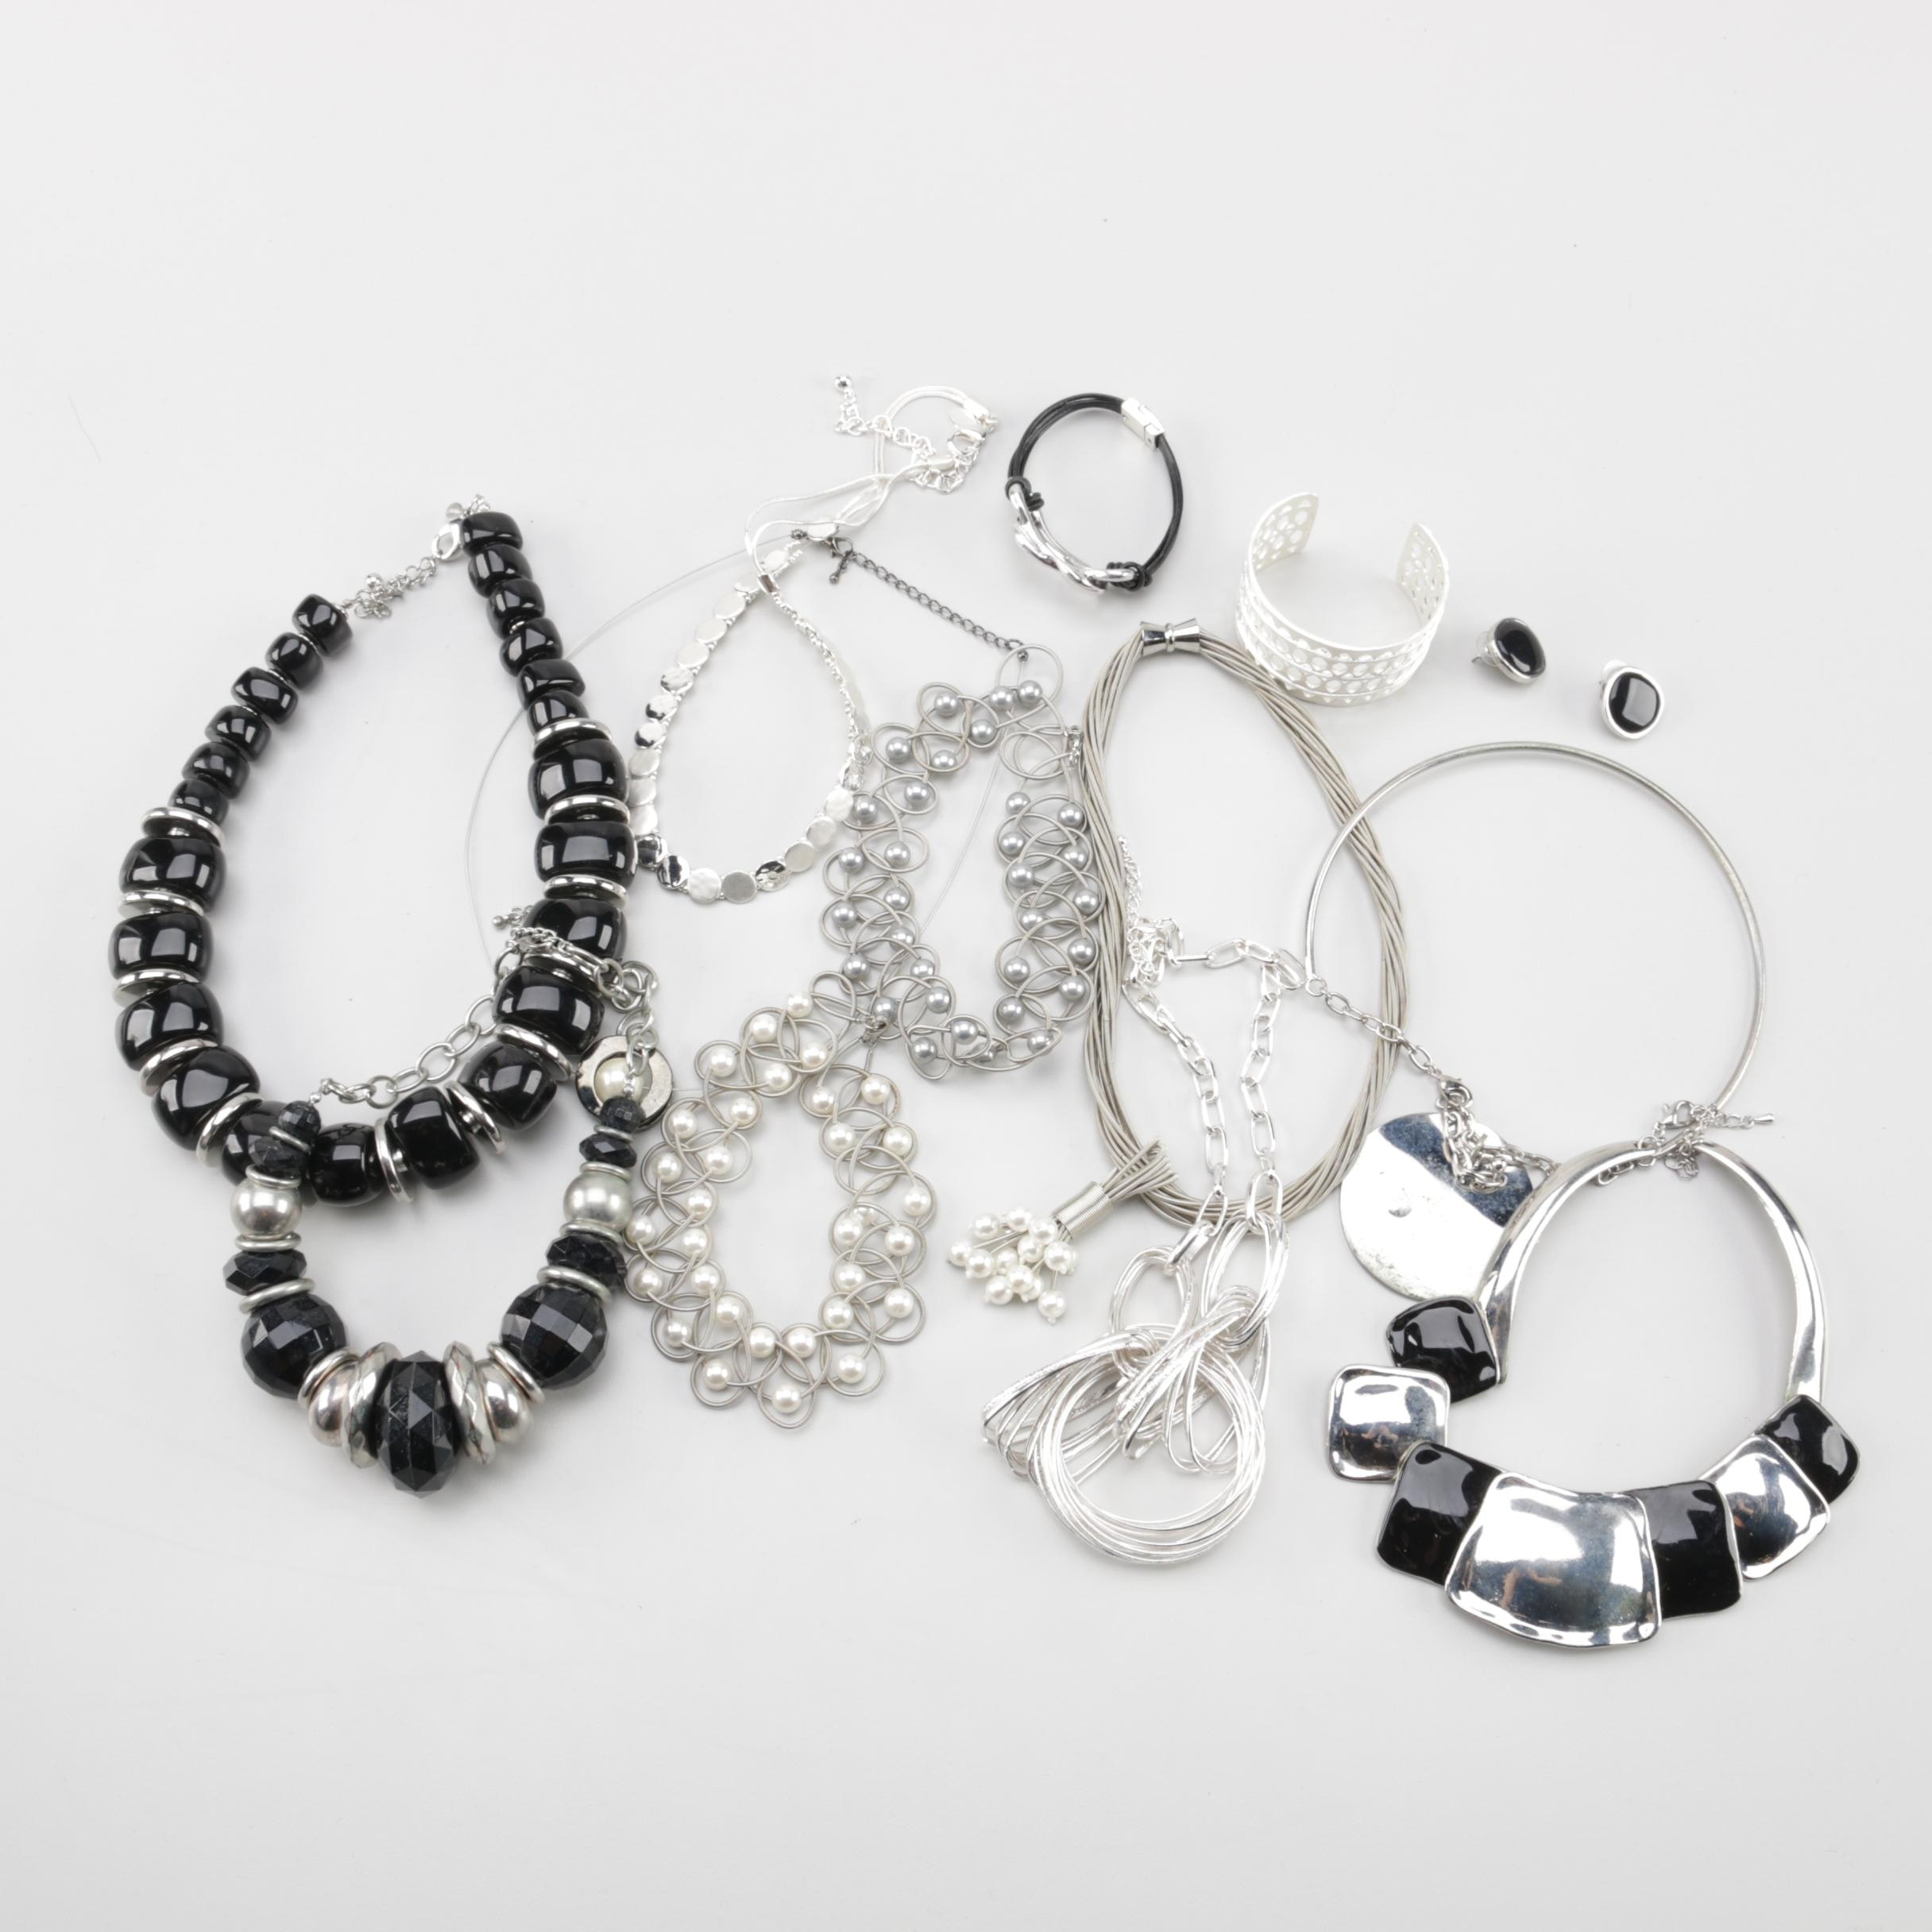 Jewelry Assortment Including Chico's, Stella and Dot, and Imitation Pearl